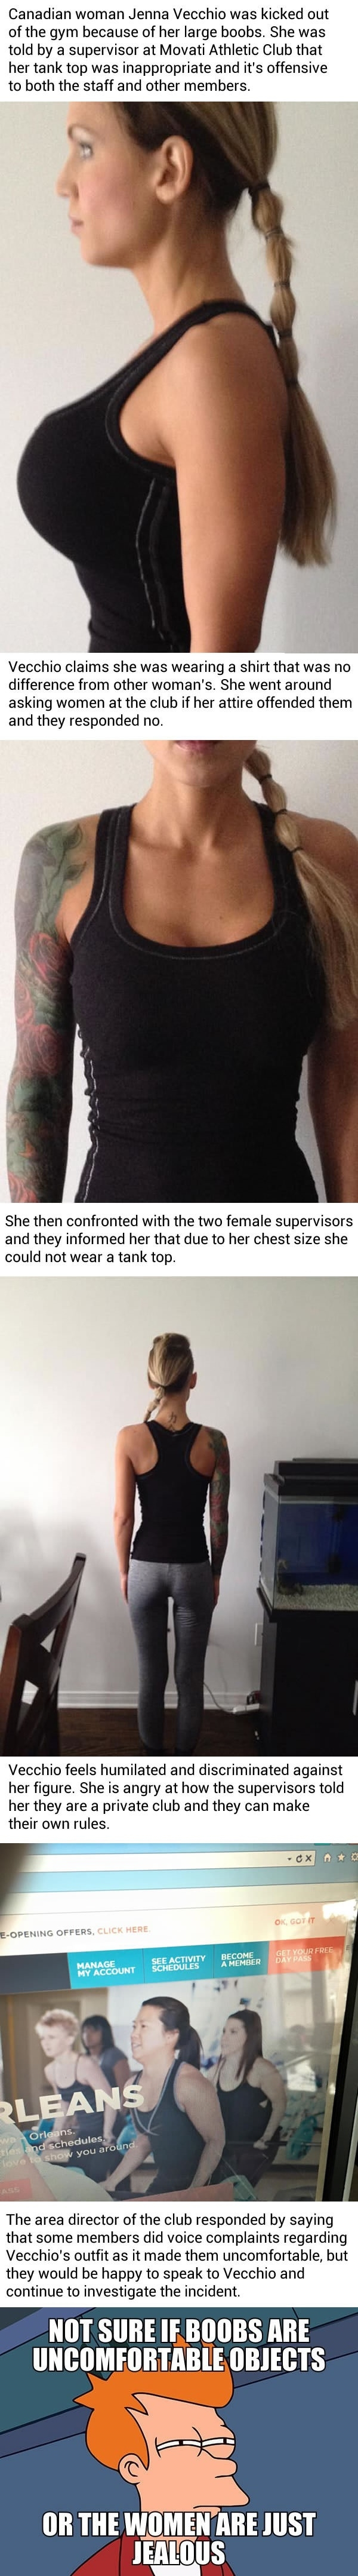 Woman got kicked out of gym because her b00bs are too big